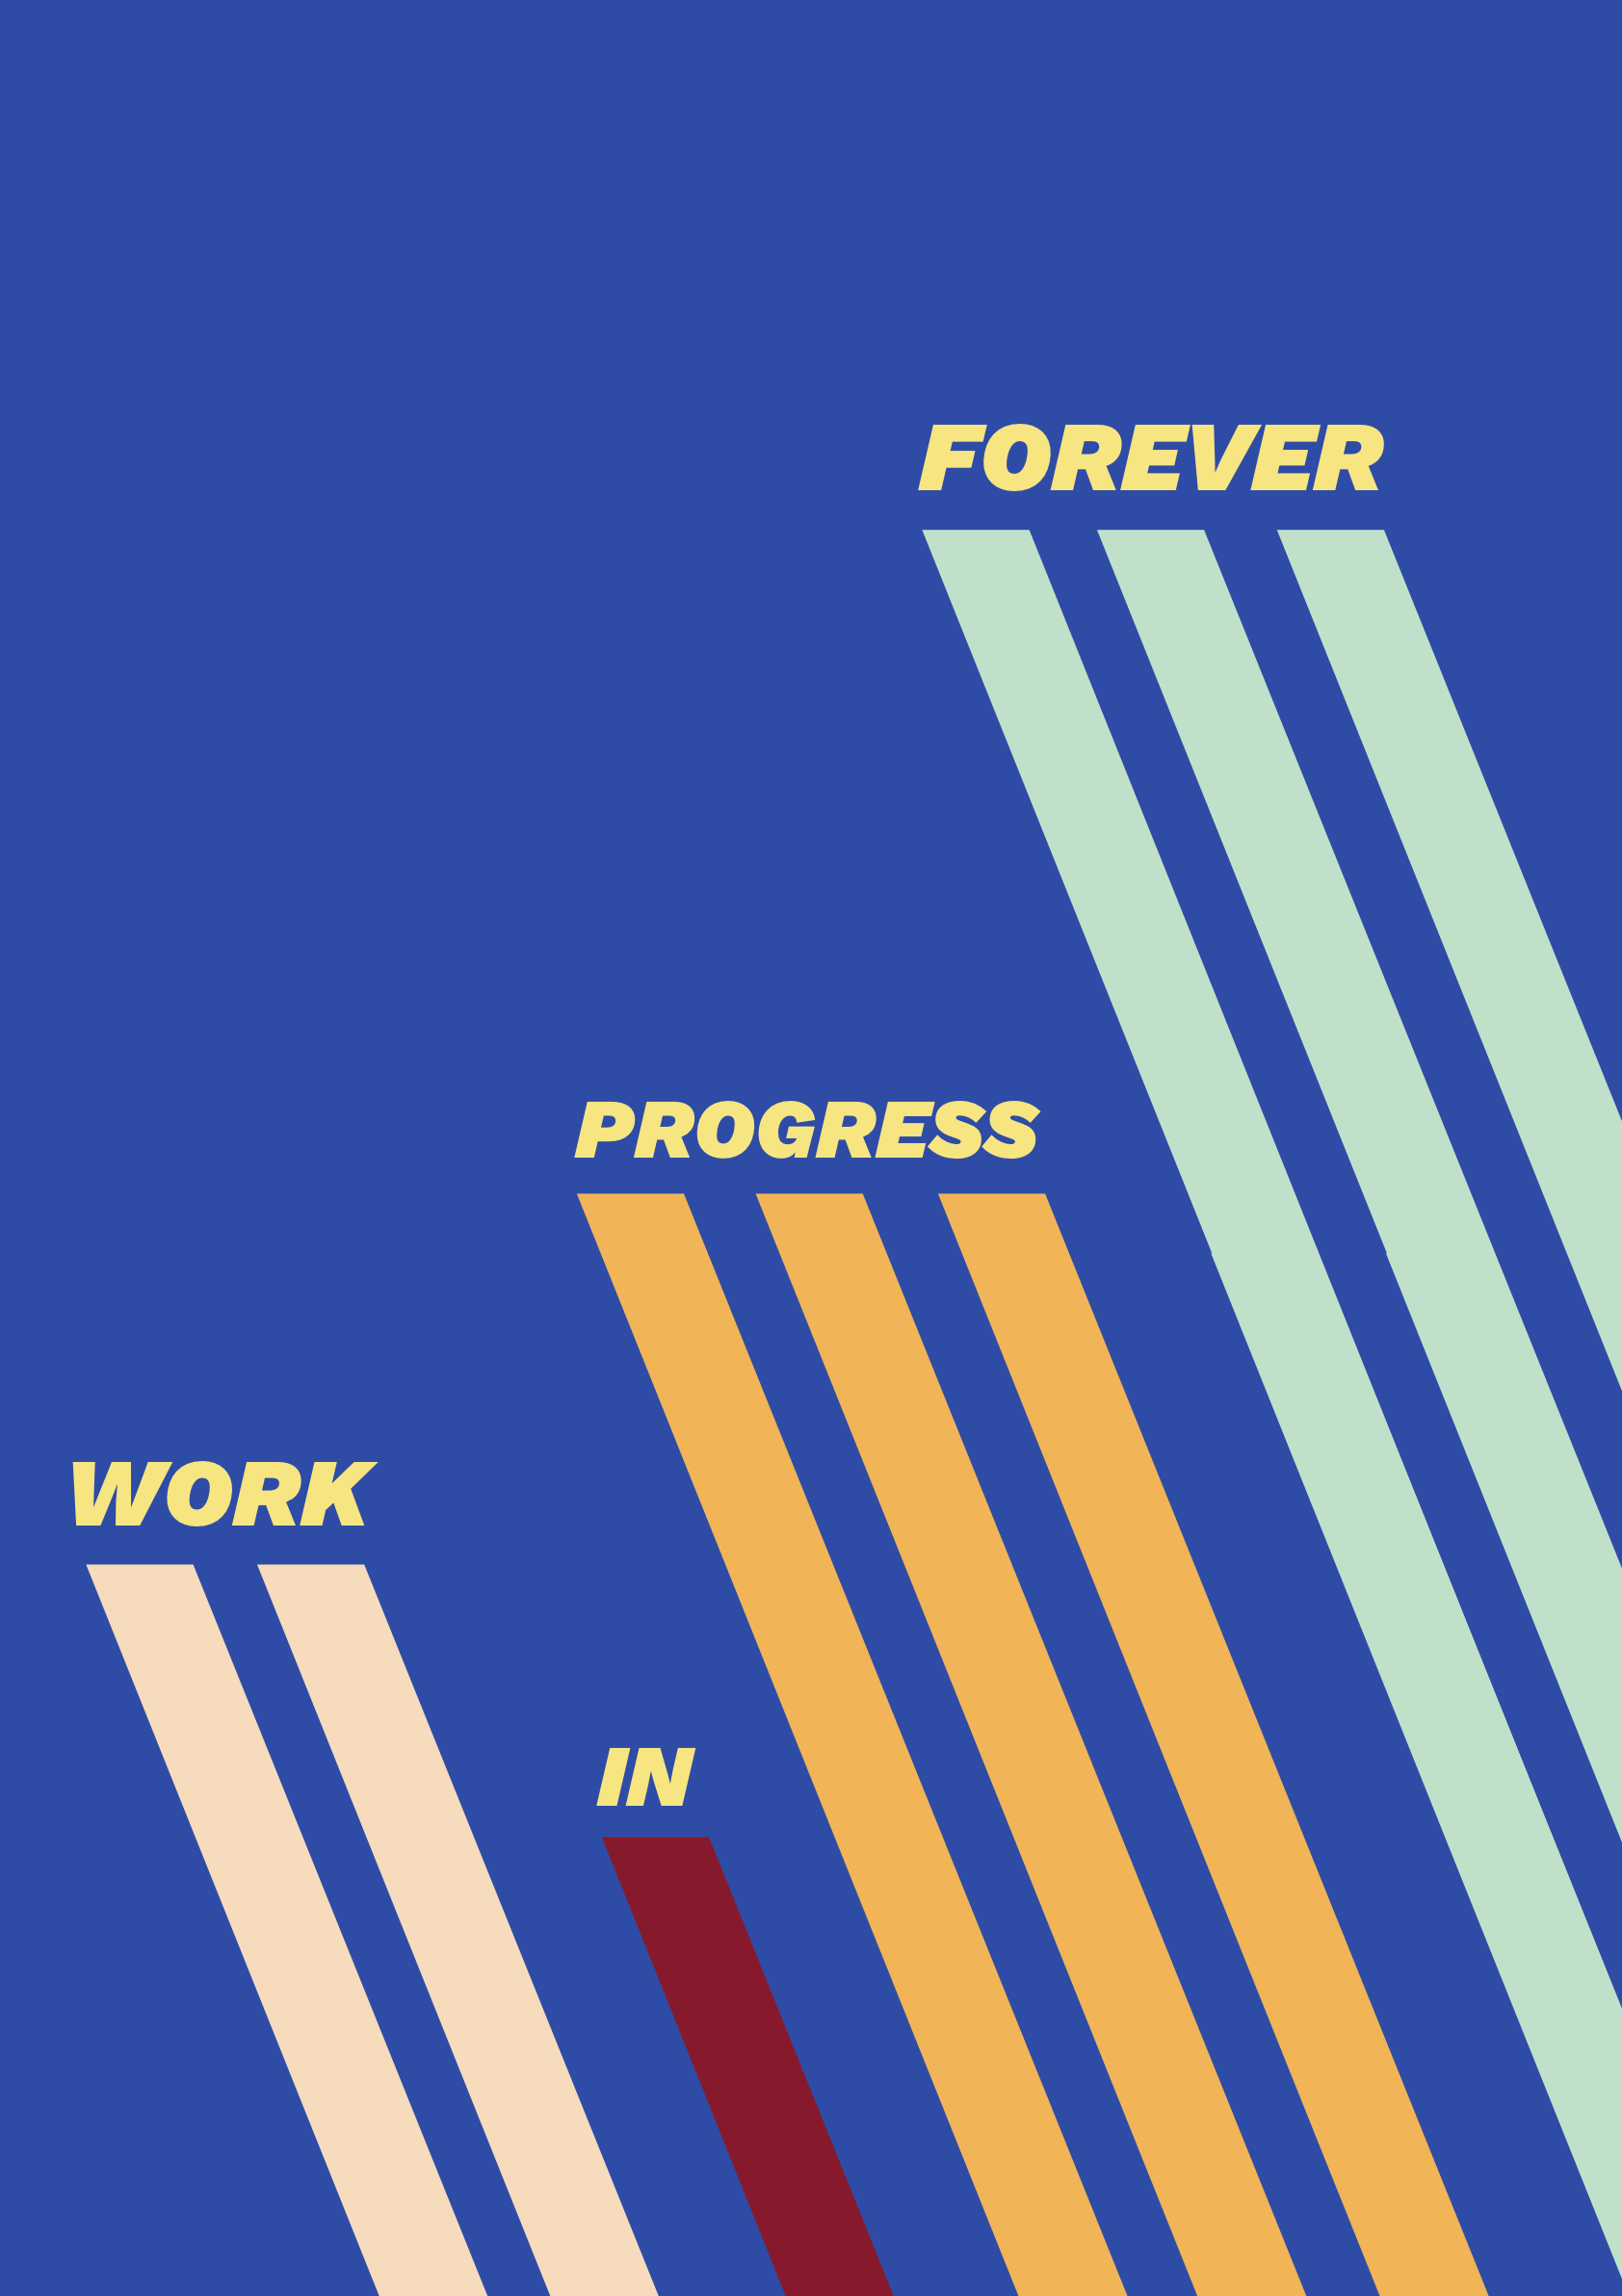 wip_forever.001.png